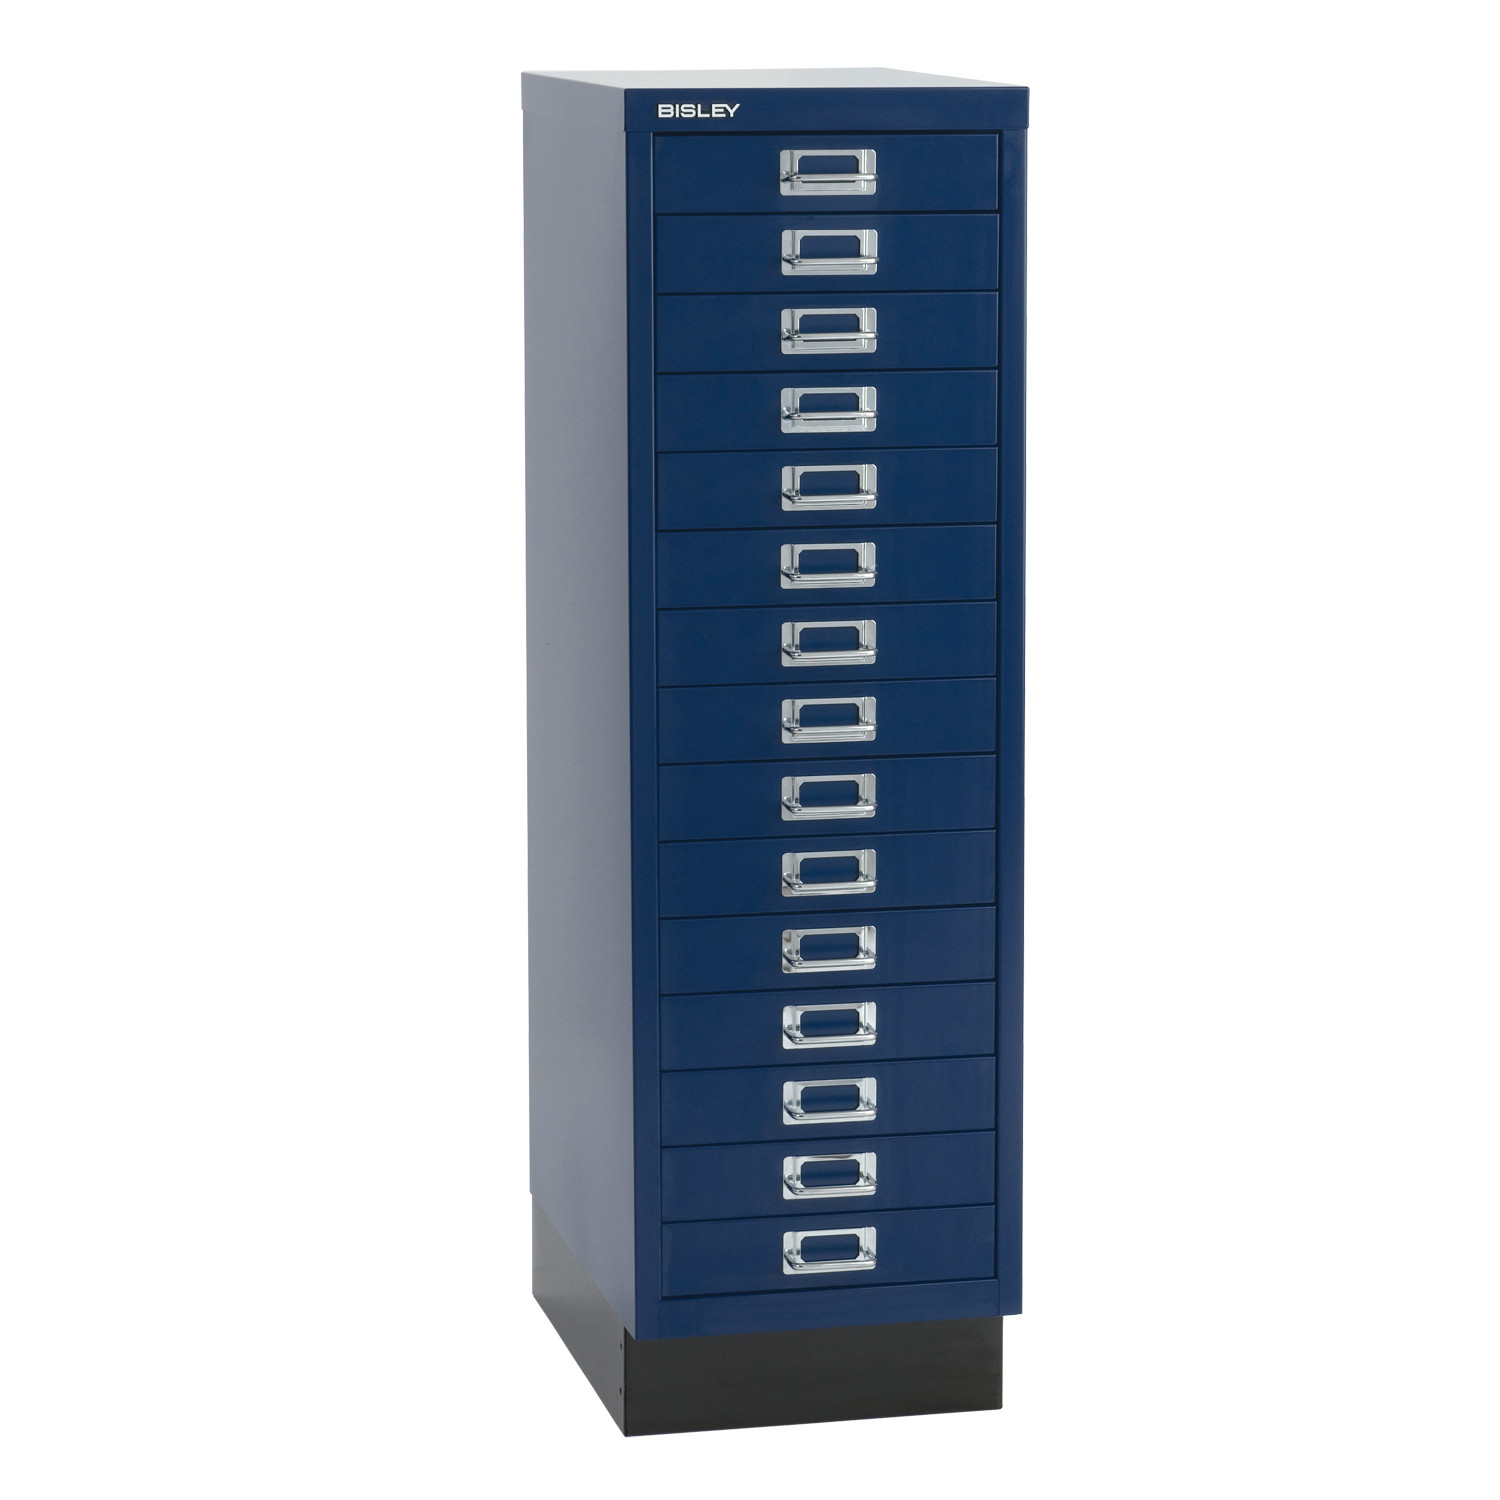 39 Series Multidrawer Cabinet 15 drawers